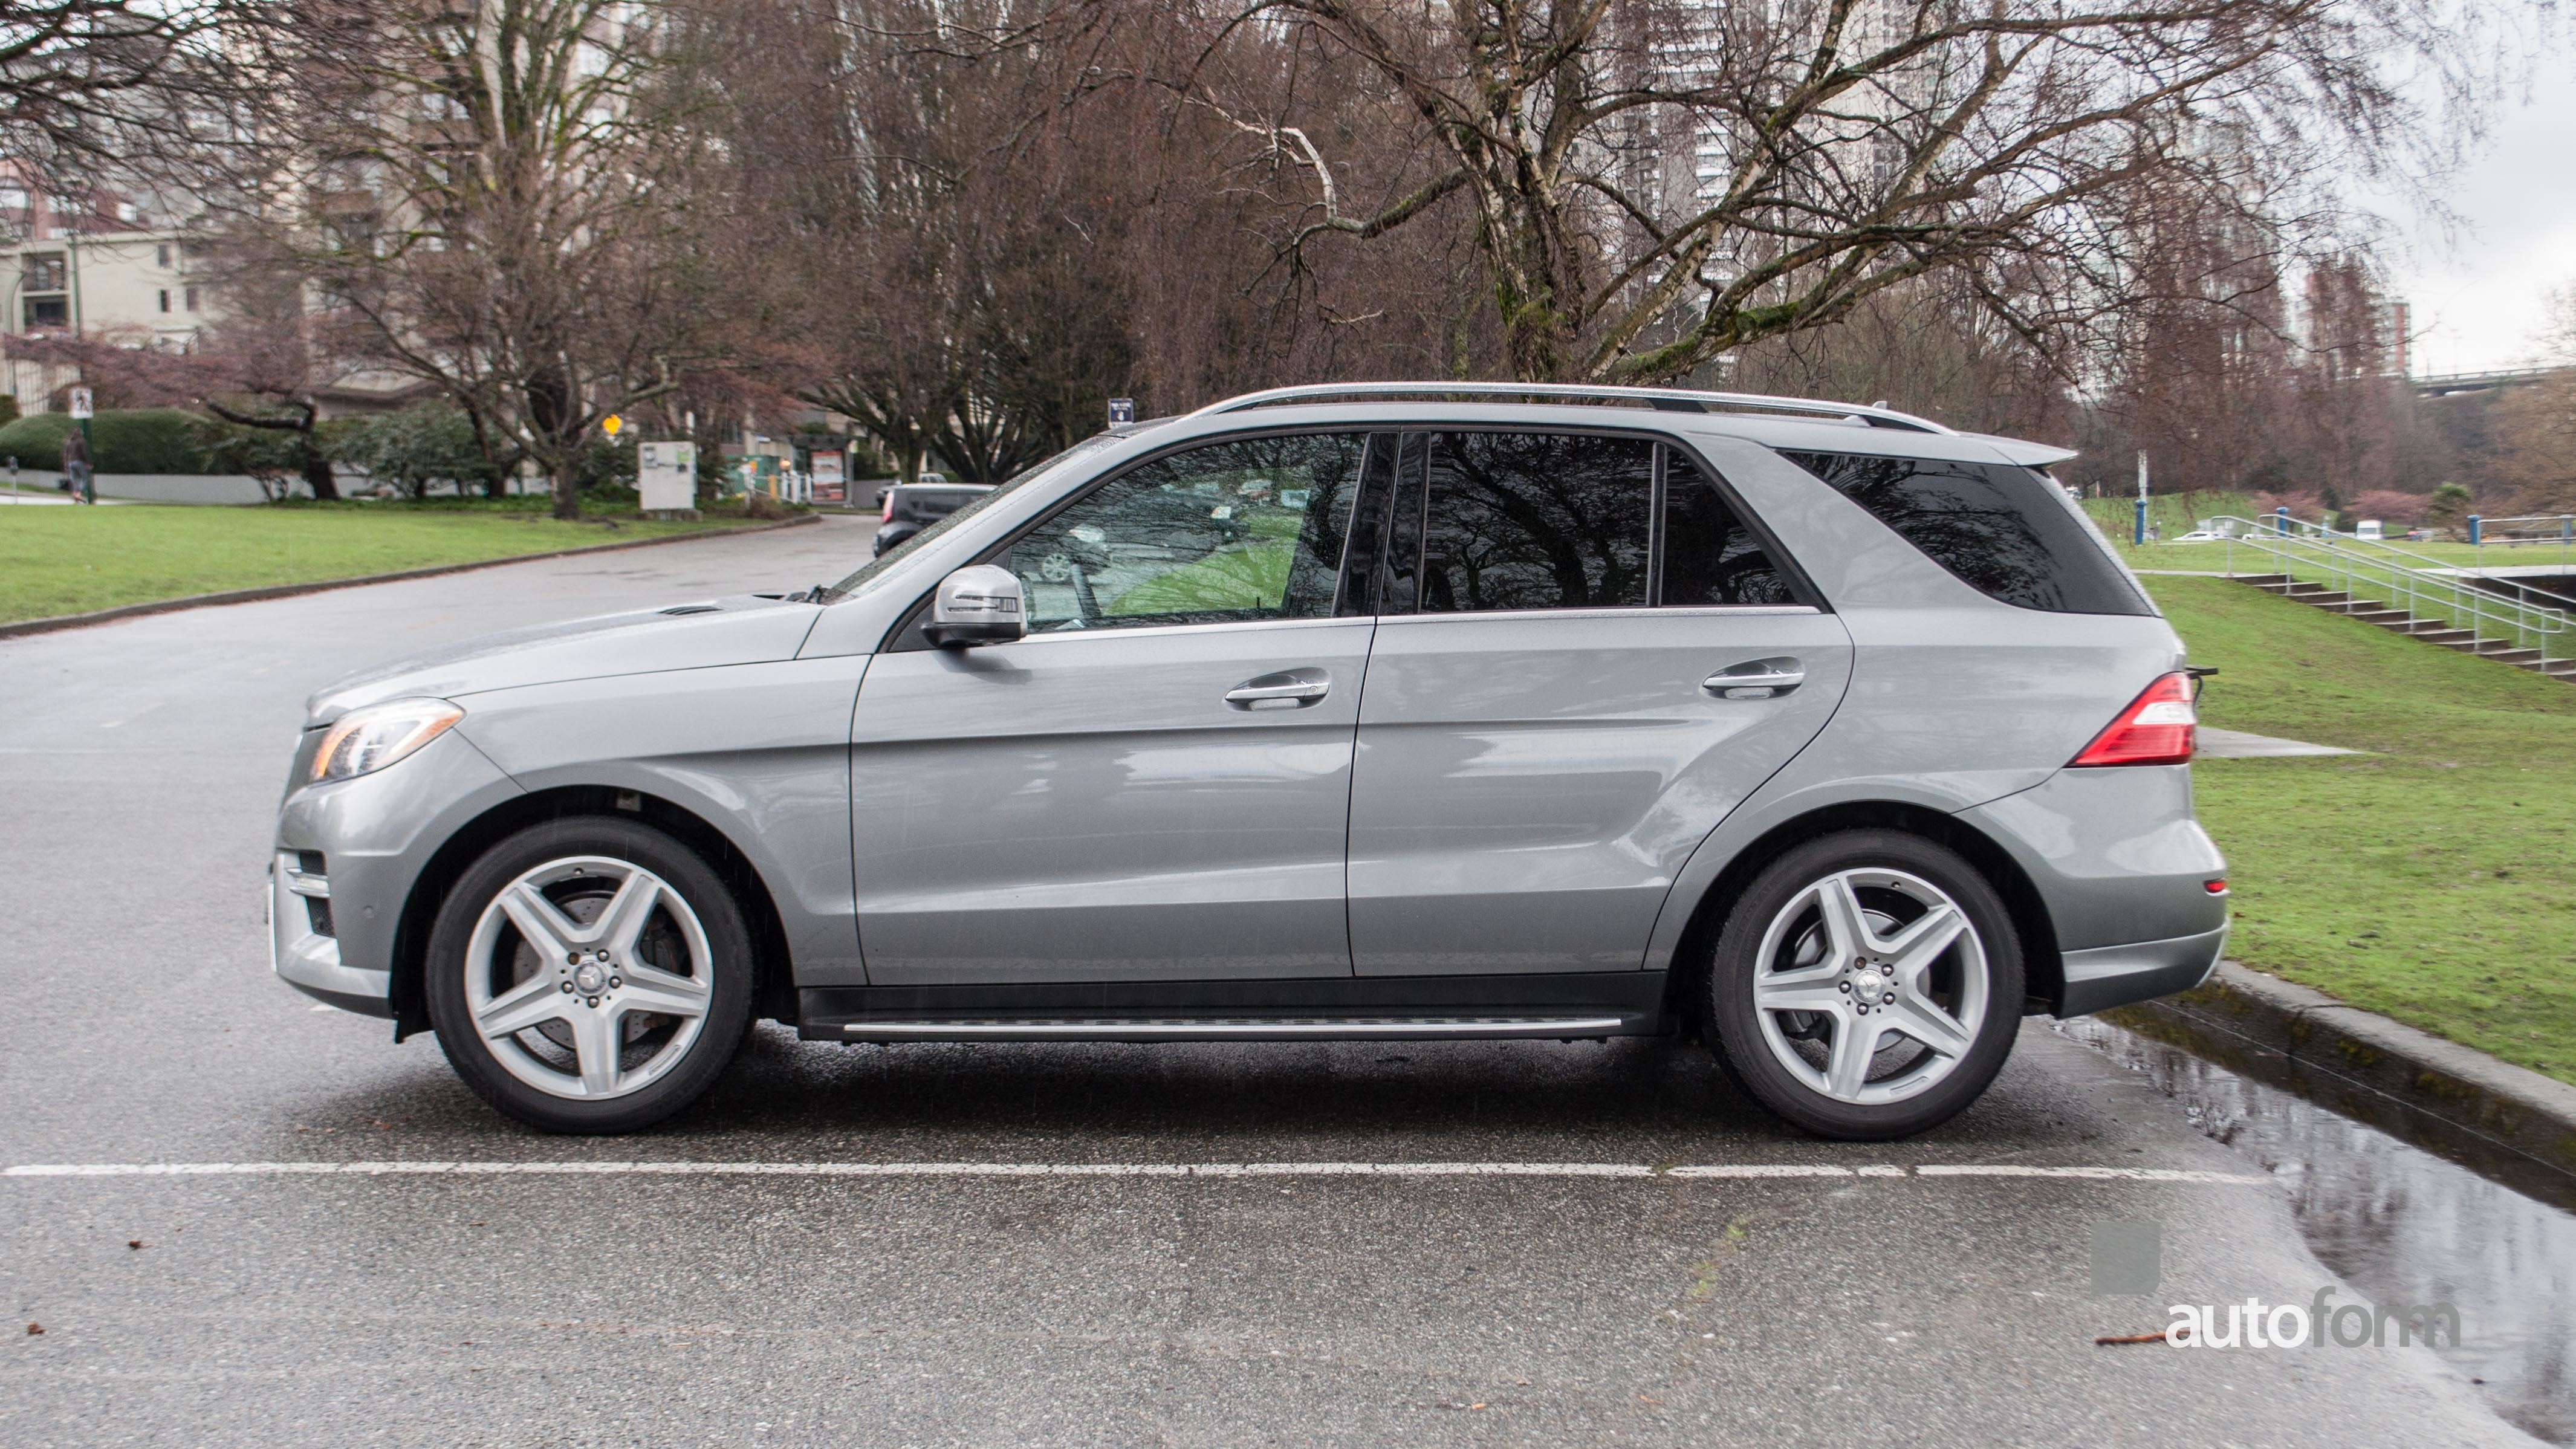 2015 Mercedes-Benz ML350 BlueTEC 4MATIC | Autoform